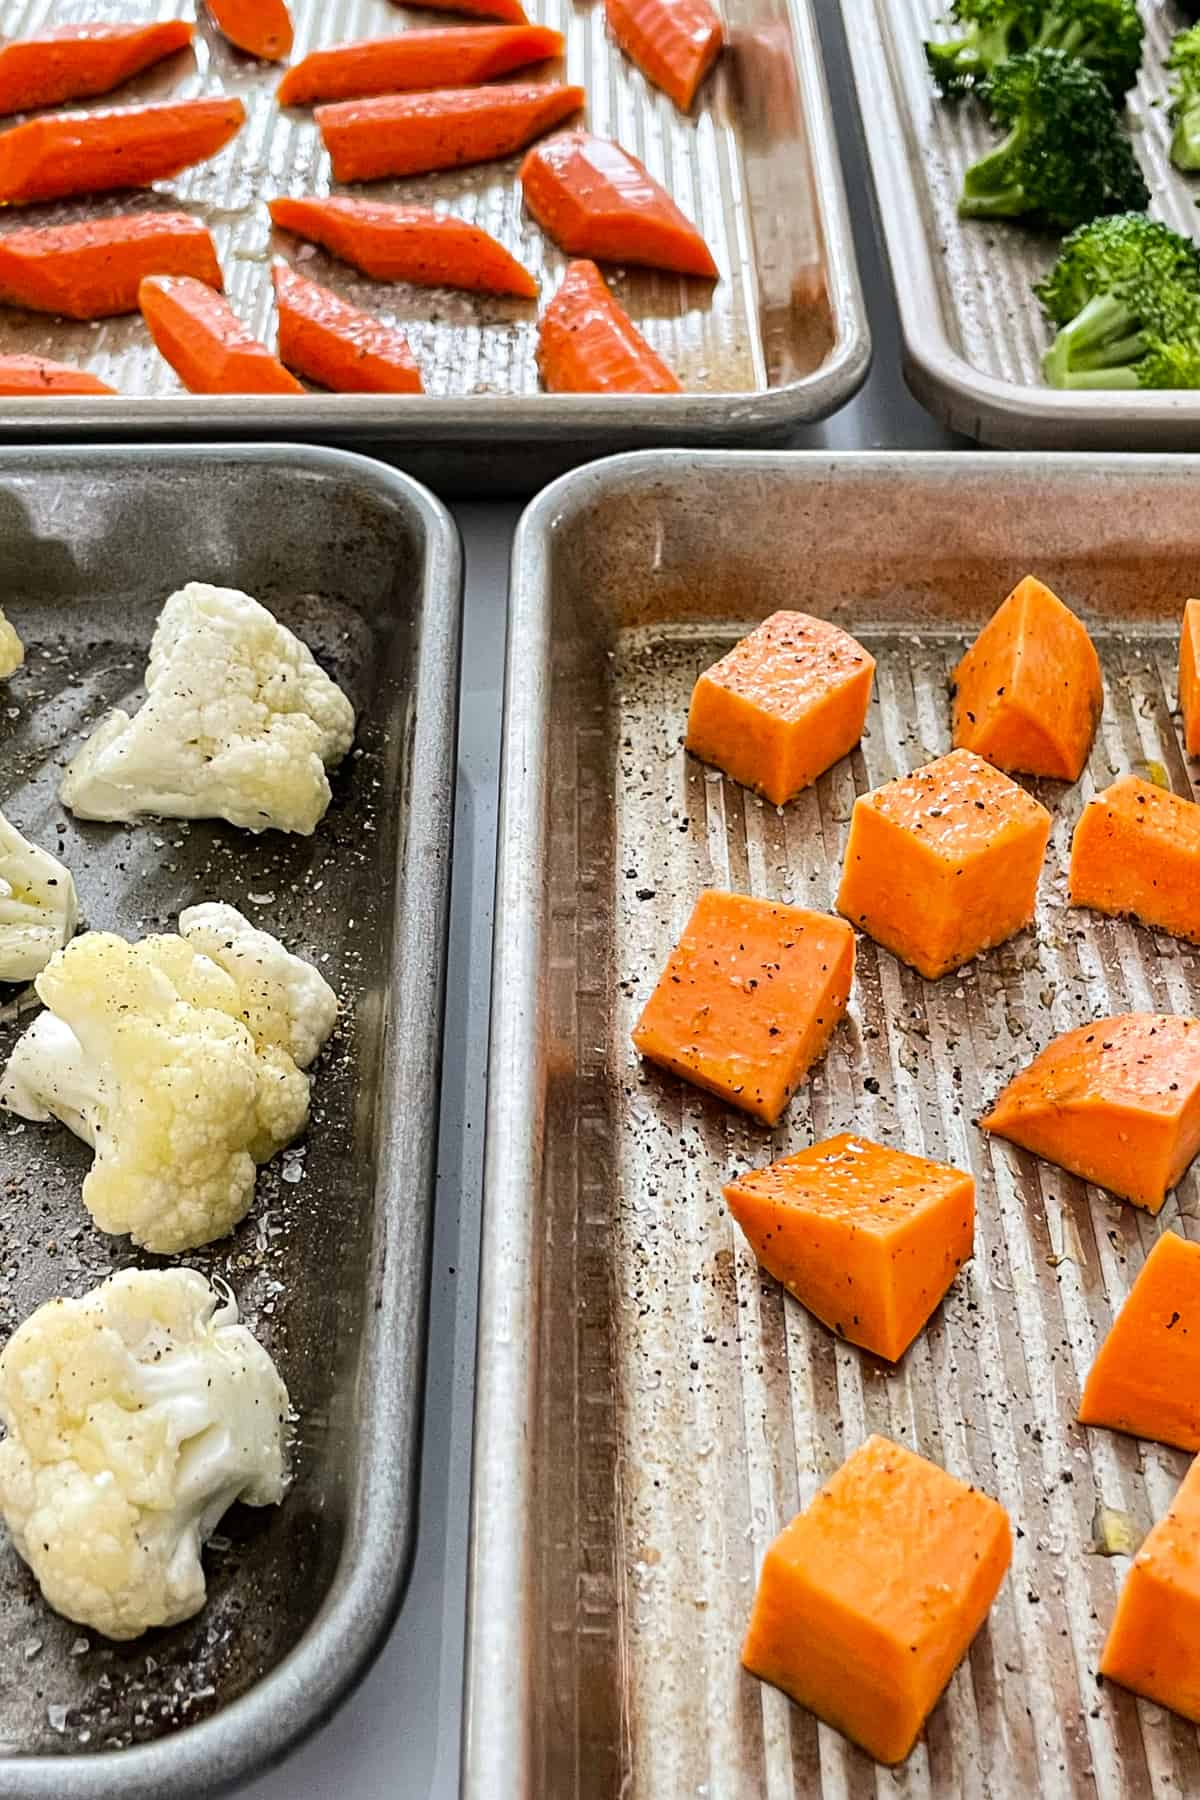 Sheet pans filled with chopped fresh vegetables.